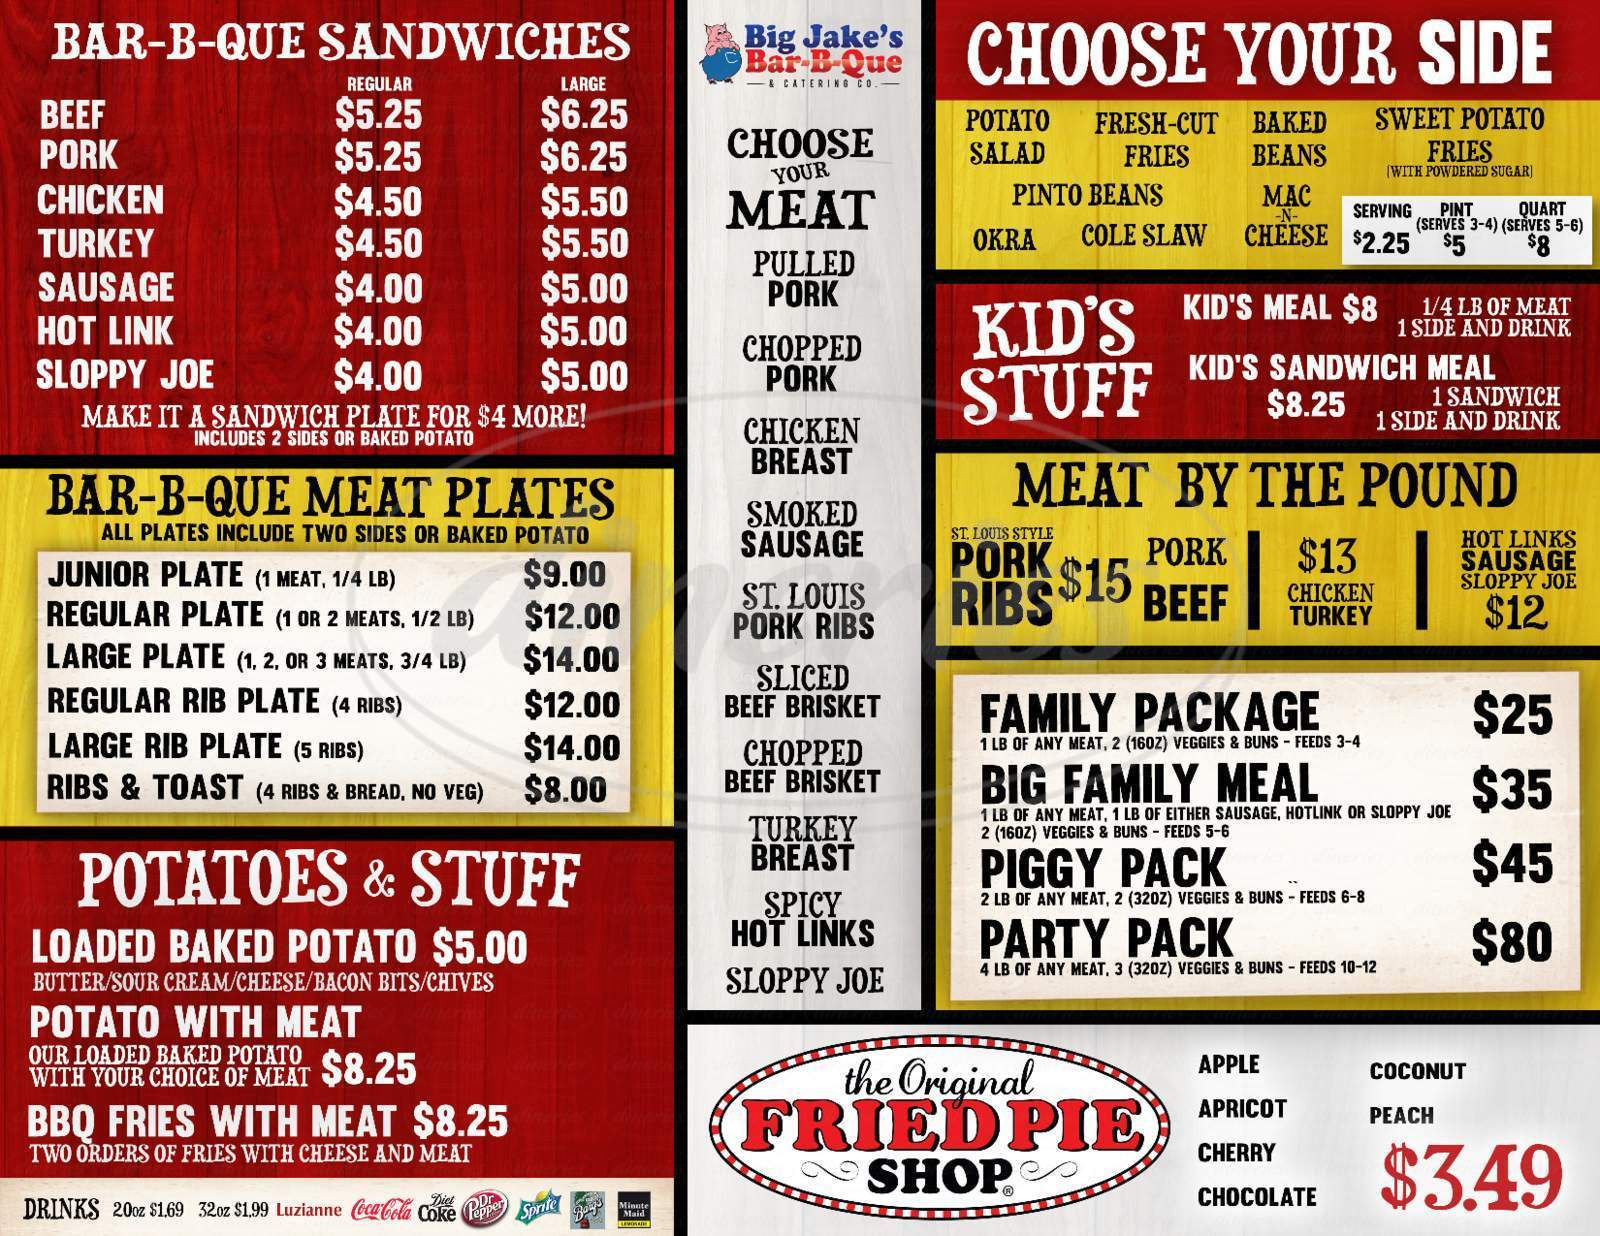 menu for Big Jakes Bar-B-Q